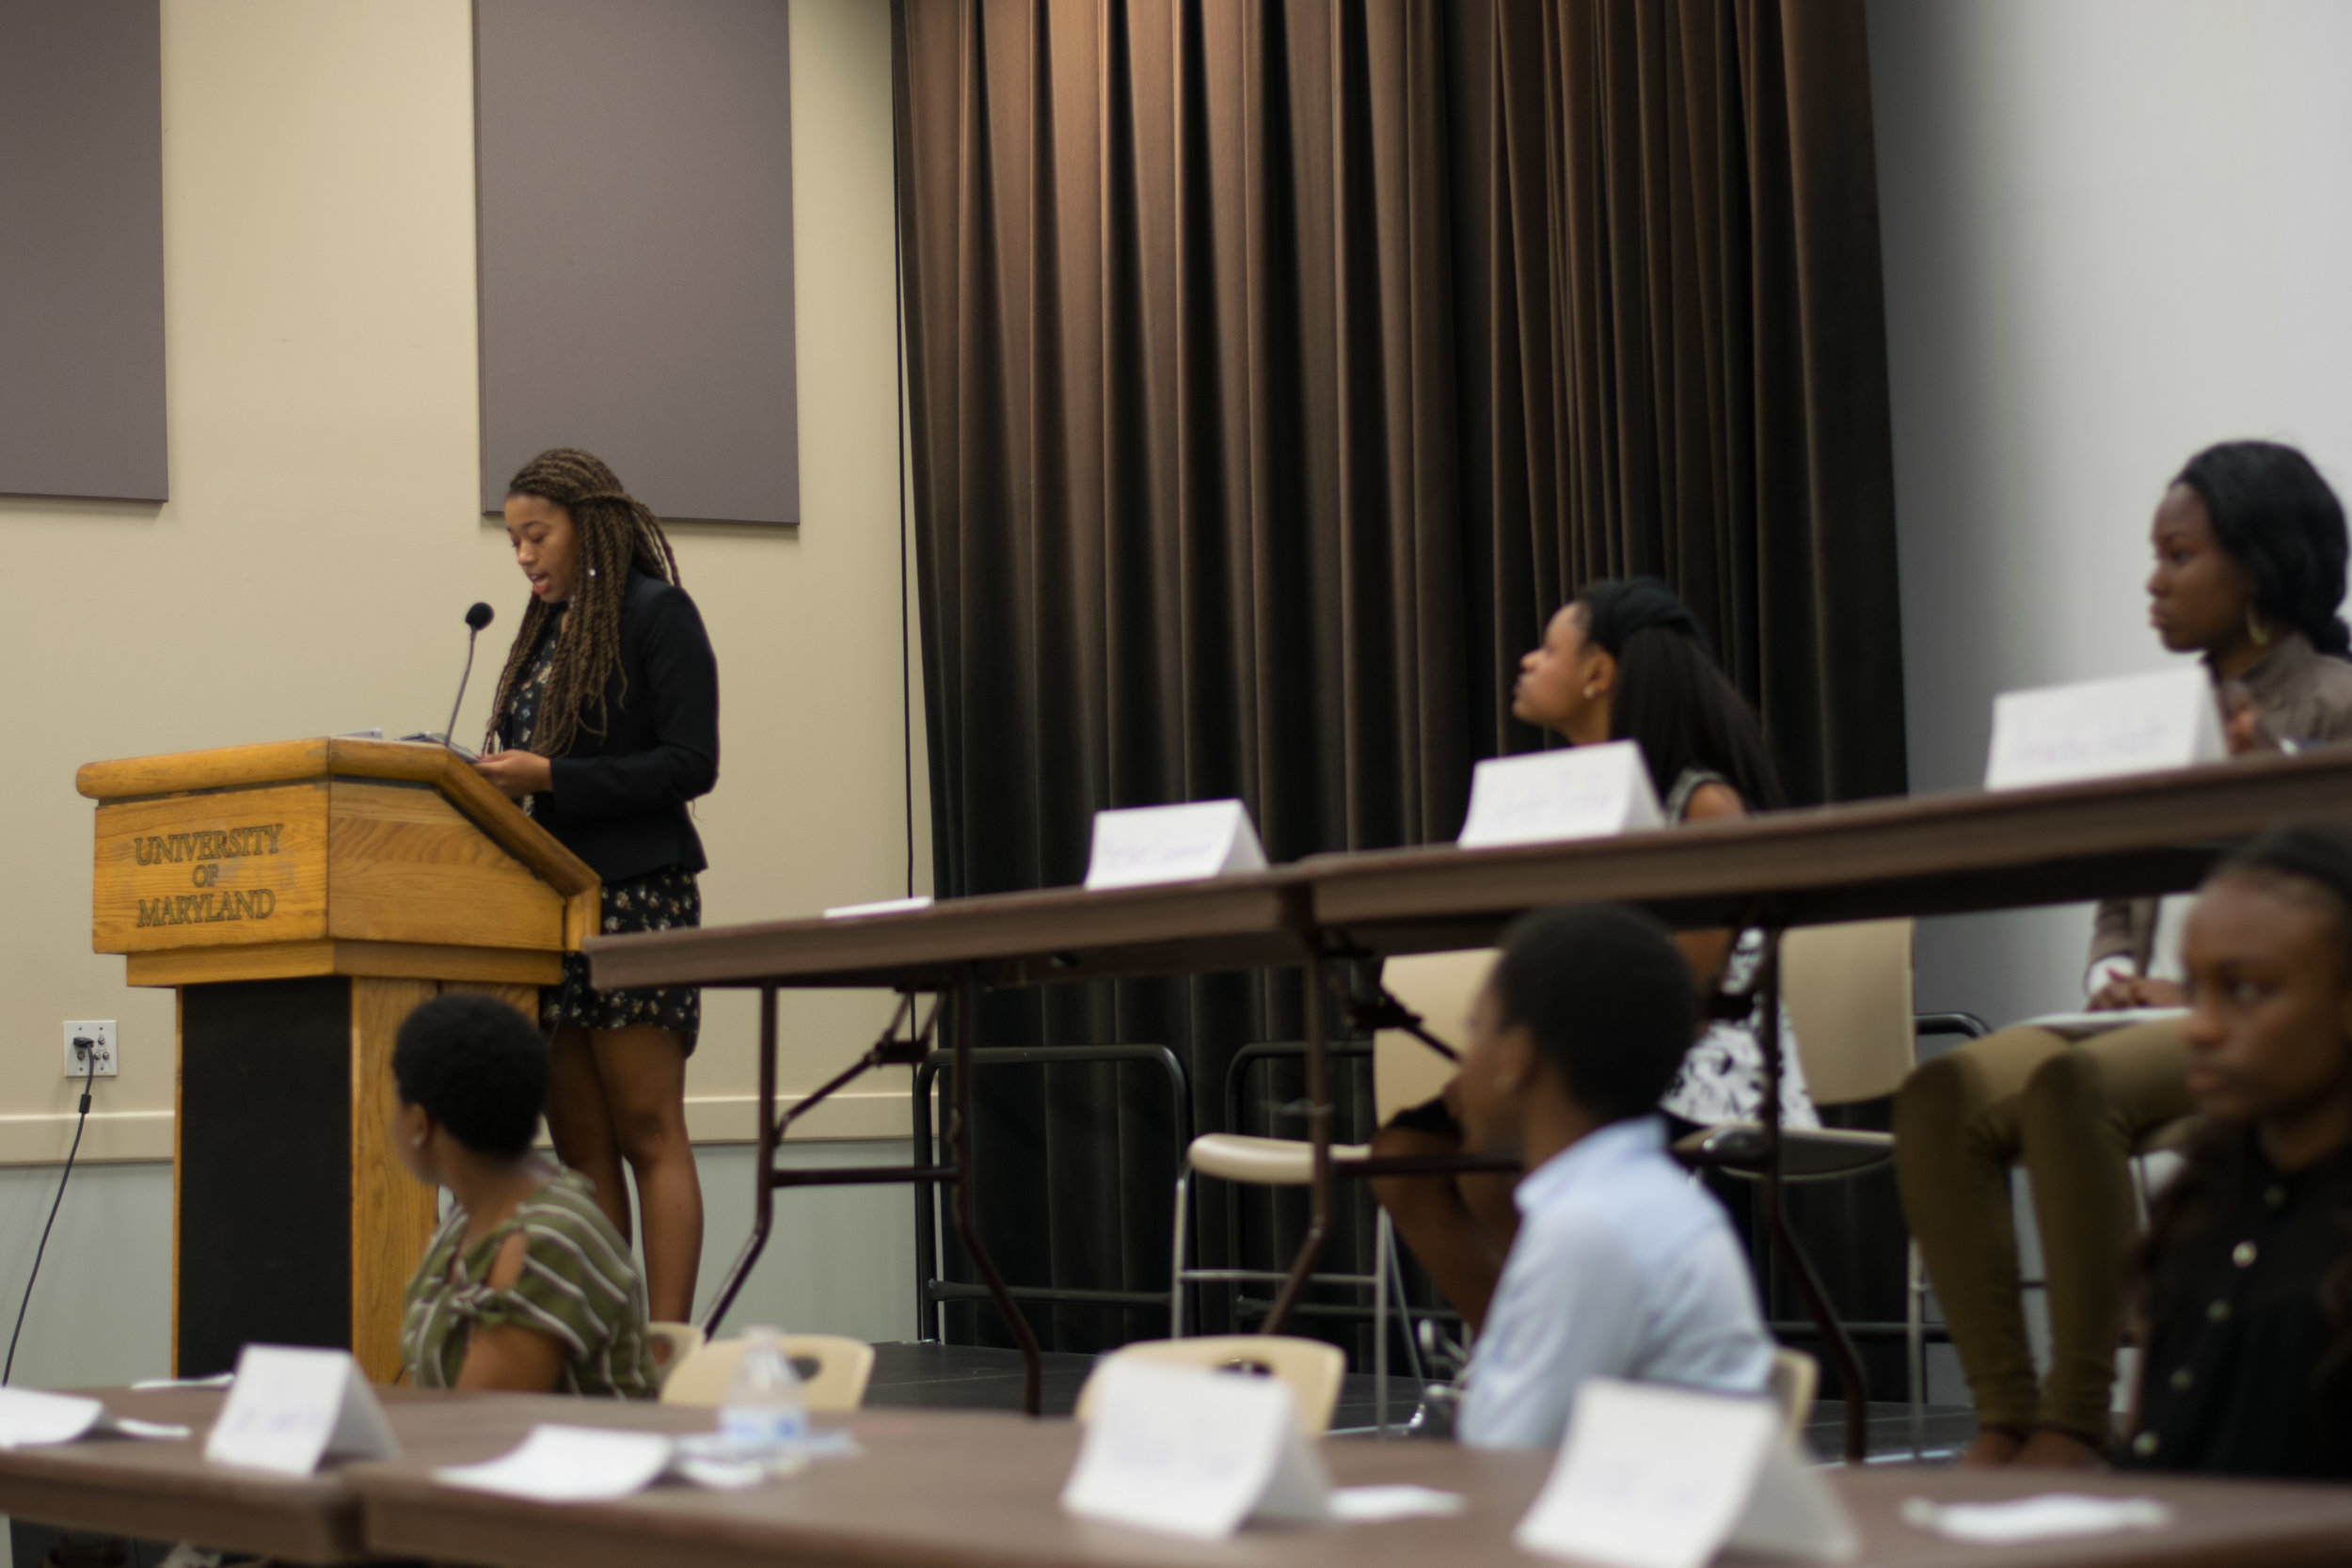 Tamya Anderson (left), freshman criminology and criminal justice major, delivers her 2 minute speech at the 2017-2018 Black Student Union Freshman Council elections held on Monday, Sept. 18, 2017. Anderson defined a leader as someone who is compassionate, open-minded, and approachable. Photo by Amina Lampkin.